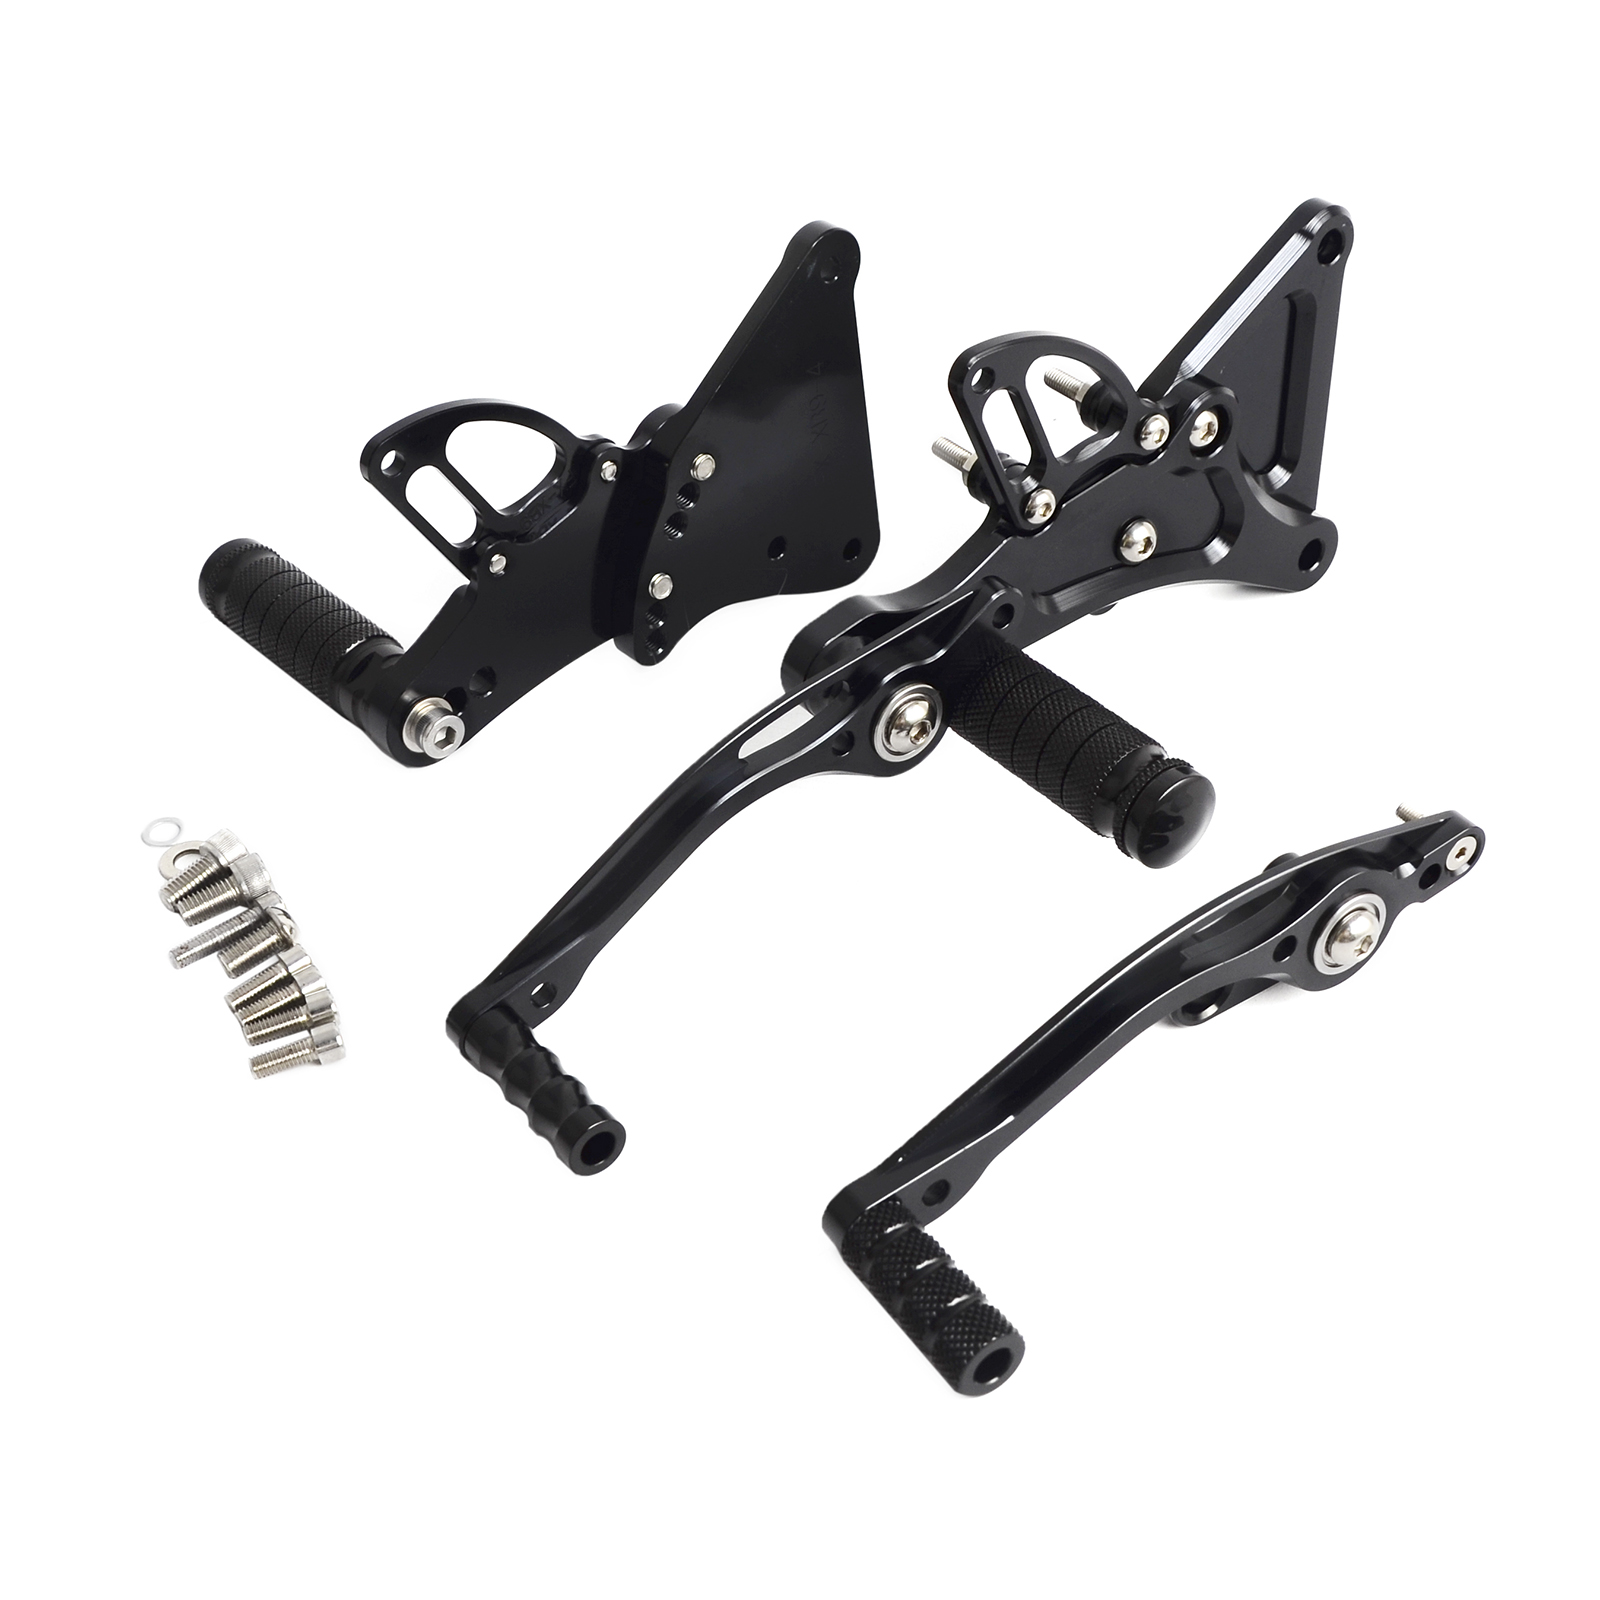 NICECNC Motorcycle Rearset Rear Set Footpegs For Buell XB9S XB12S XB9R XB12R All Years CNC-Machined From 6061-T6 Billet Aluminum